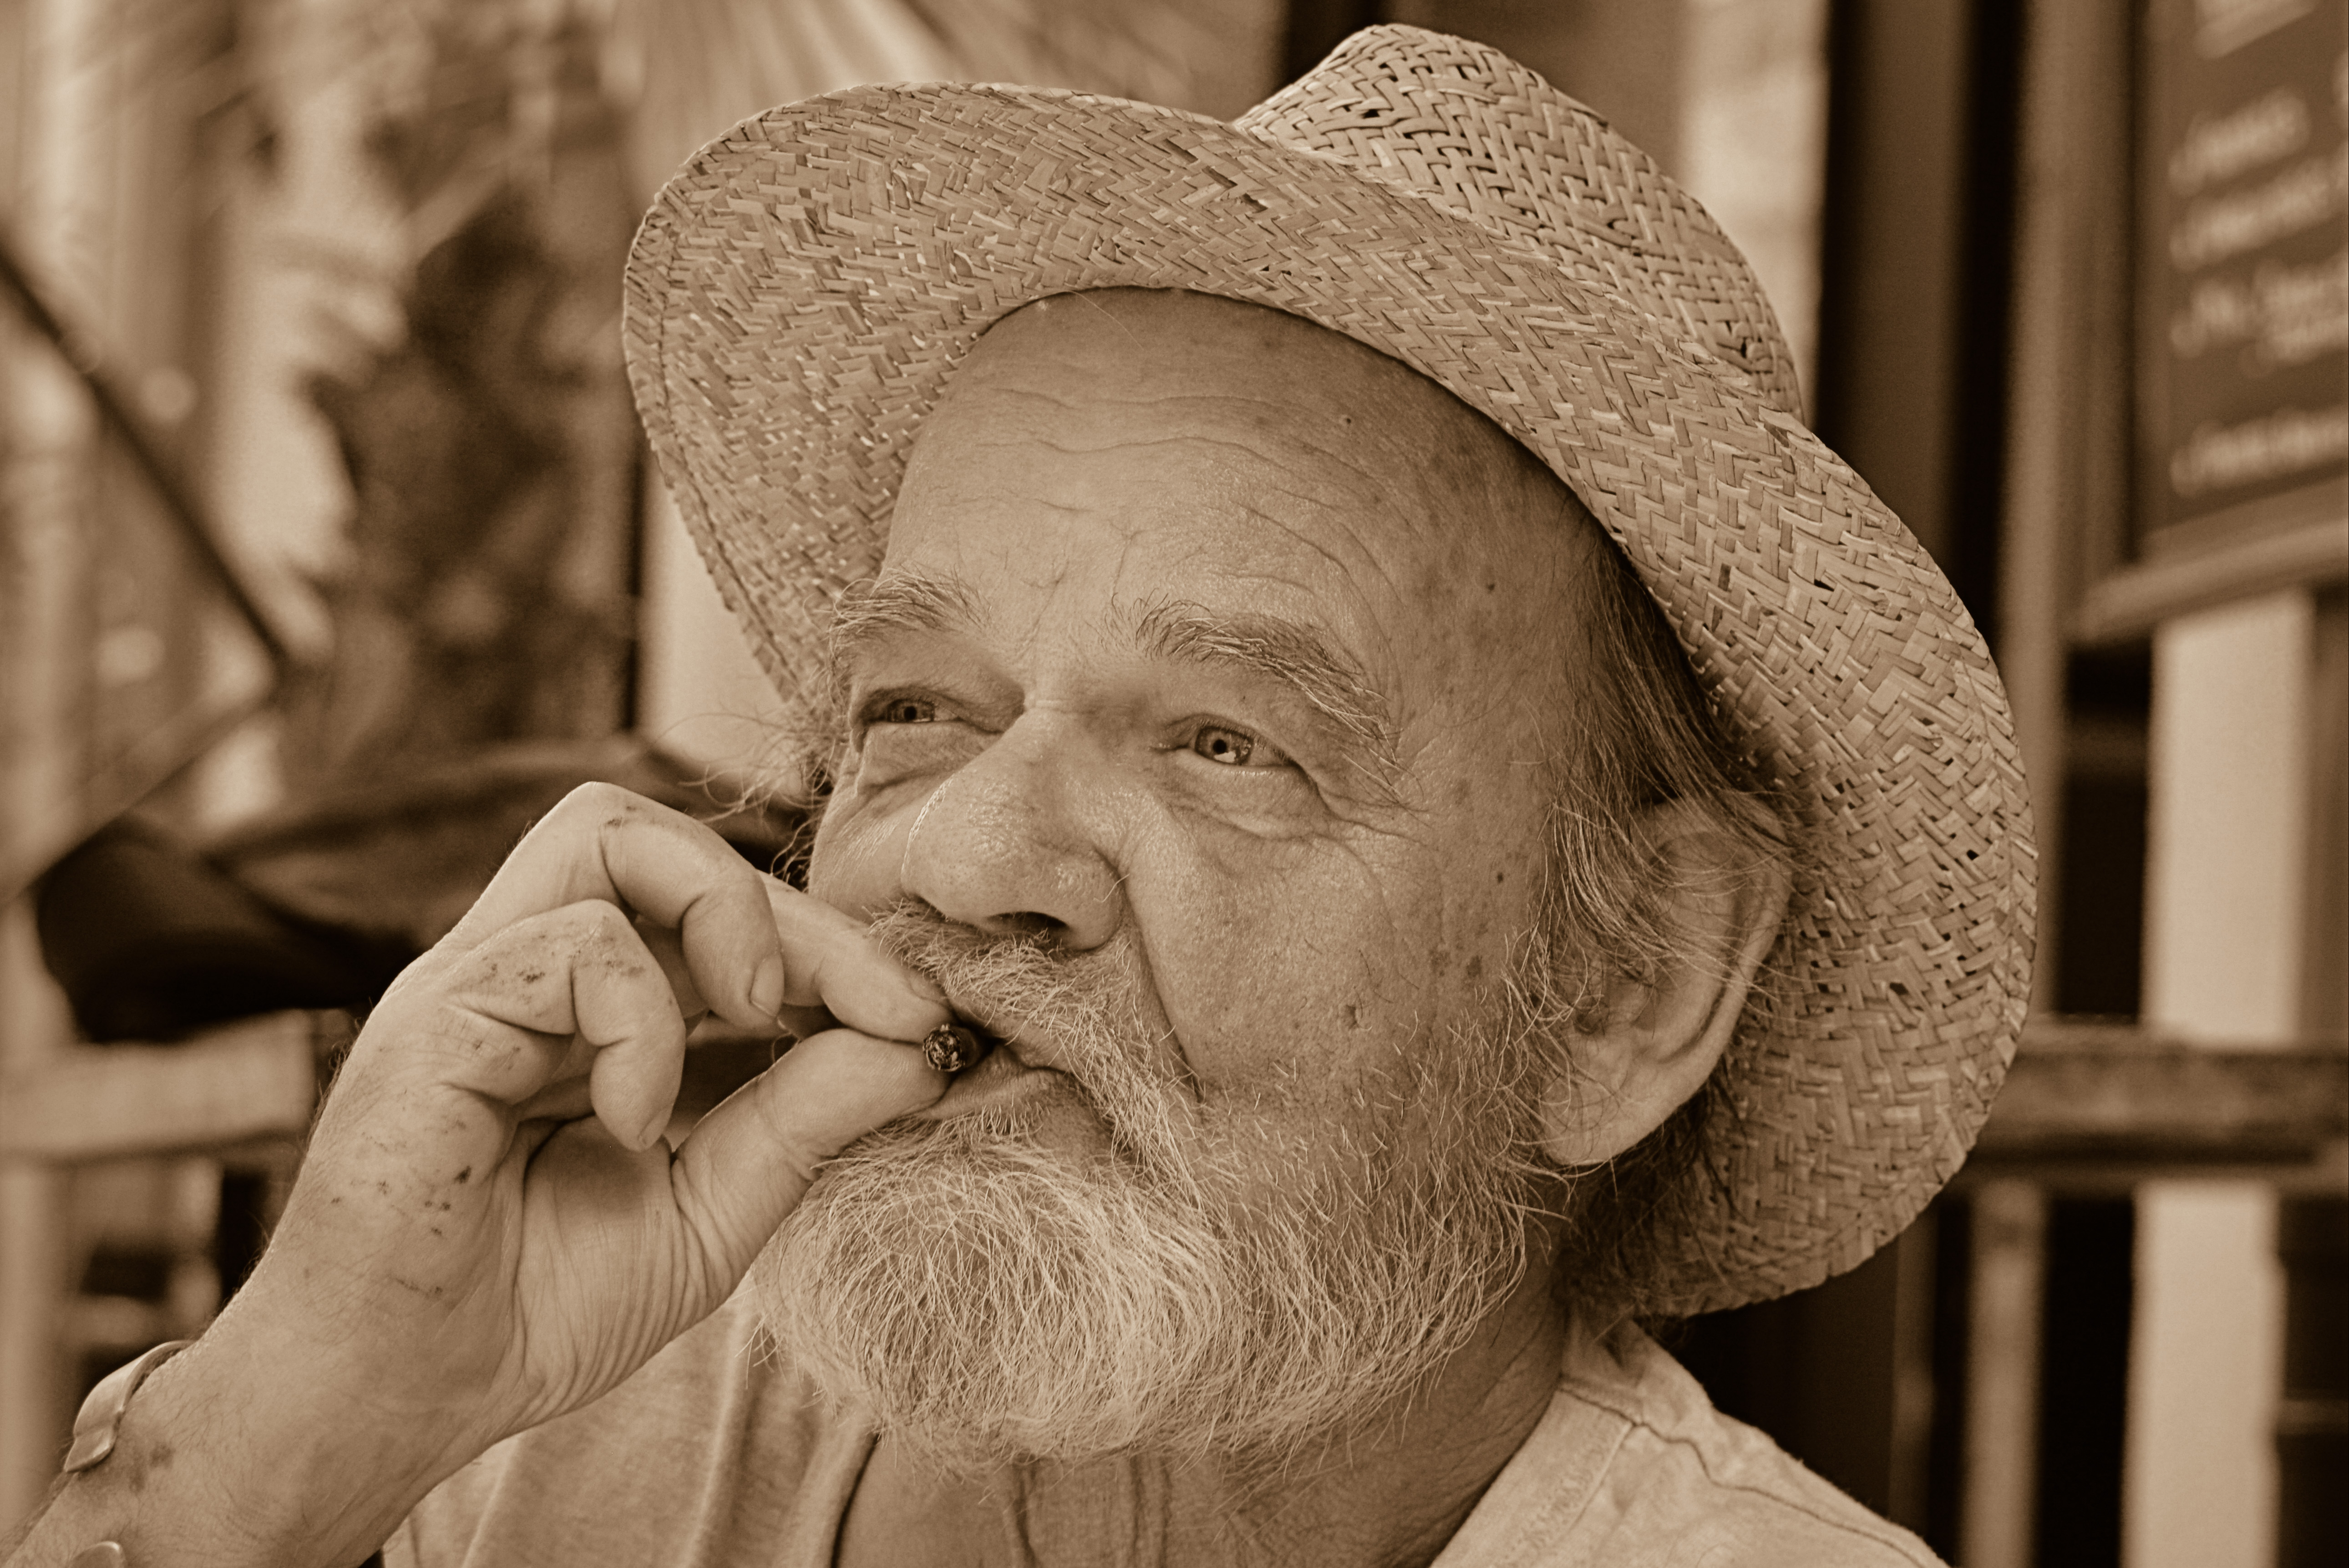 Senior gentleman smoking a marijuana joint.